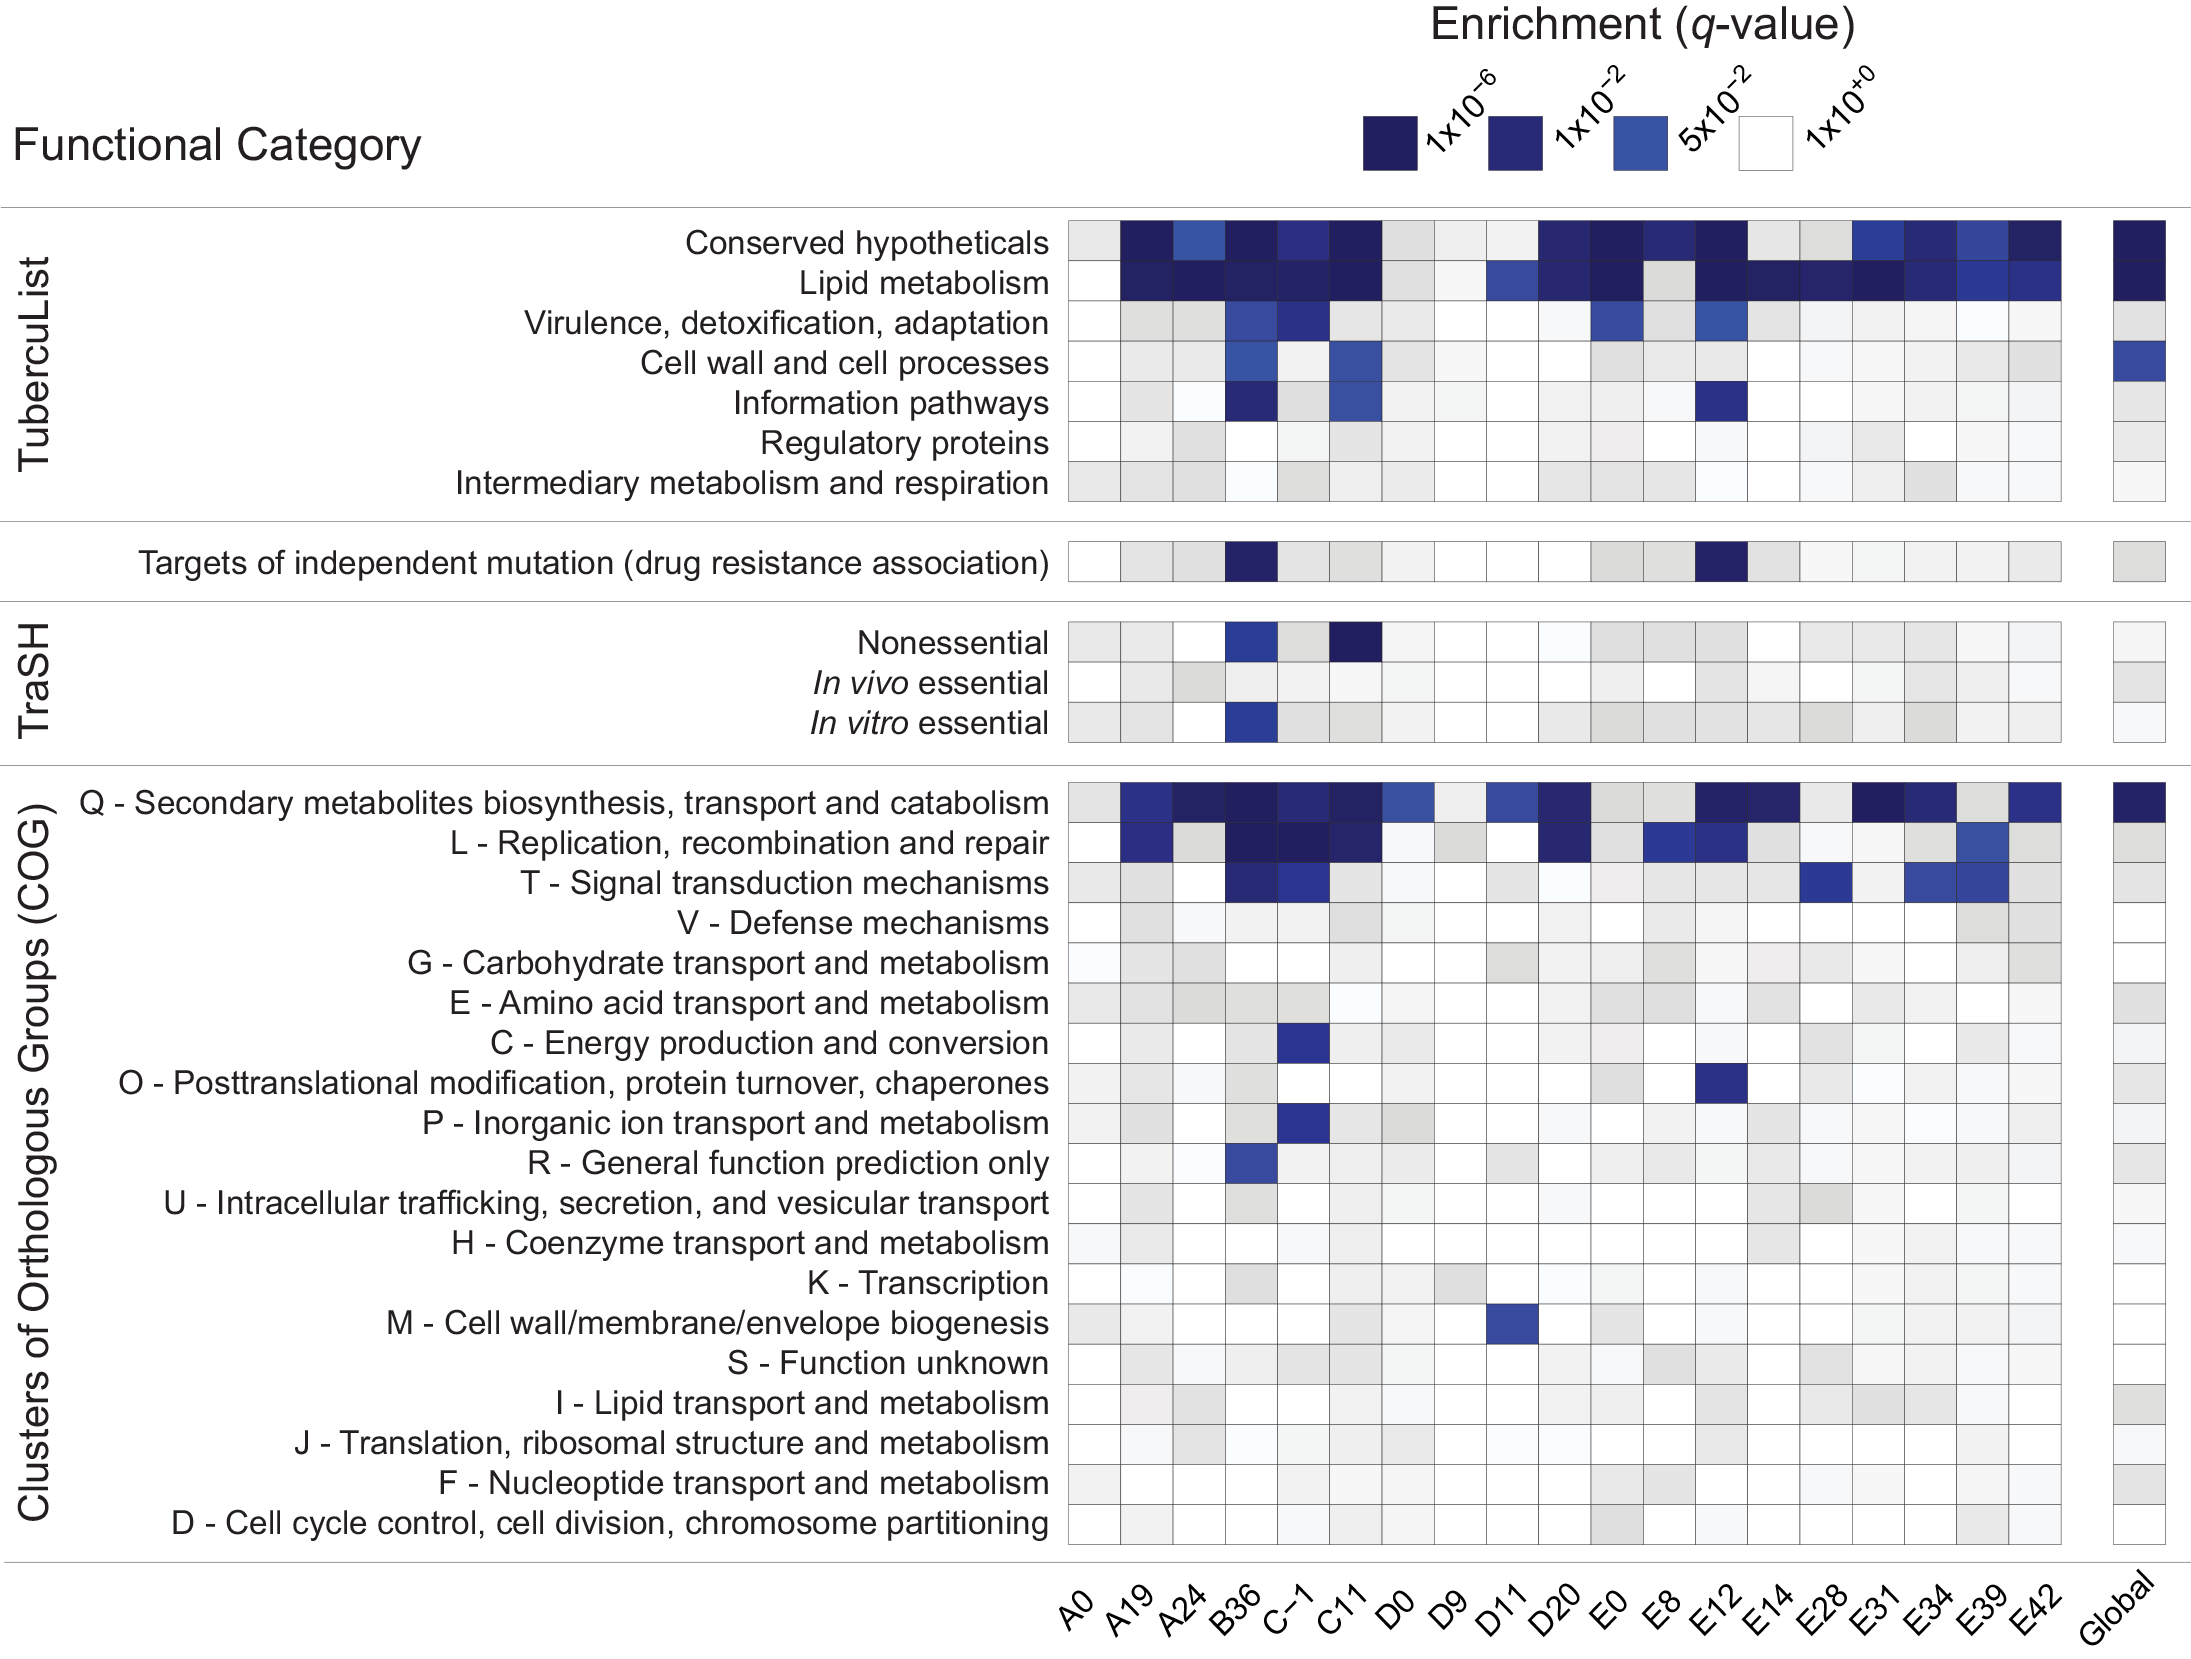 Enrichment of annotation categories among genes with extreme negative values of Tajima's D (TD).